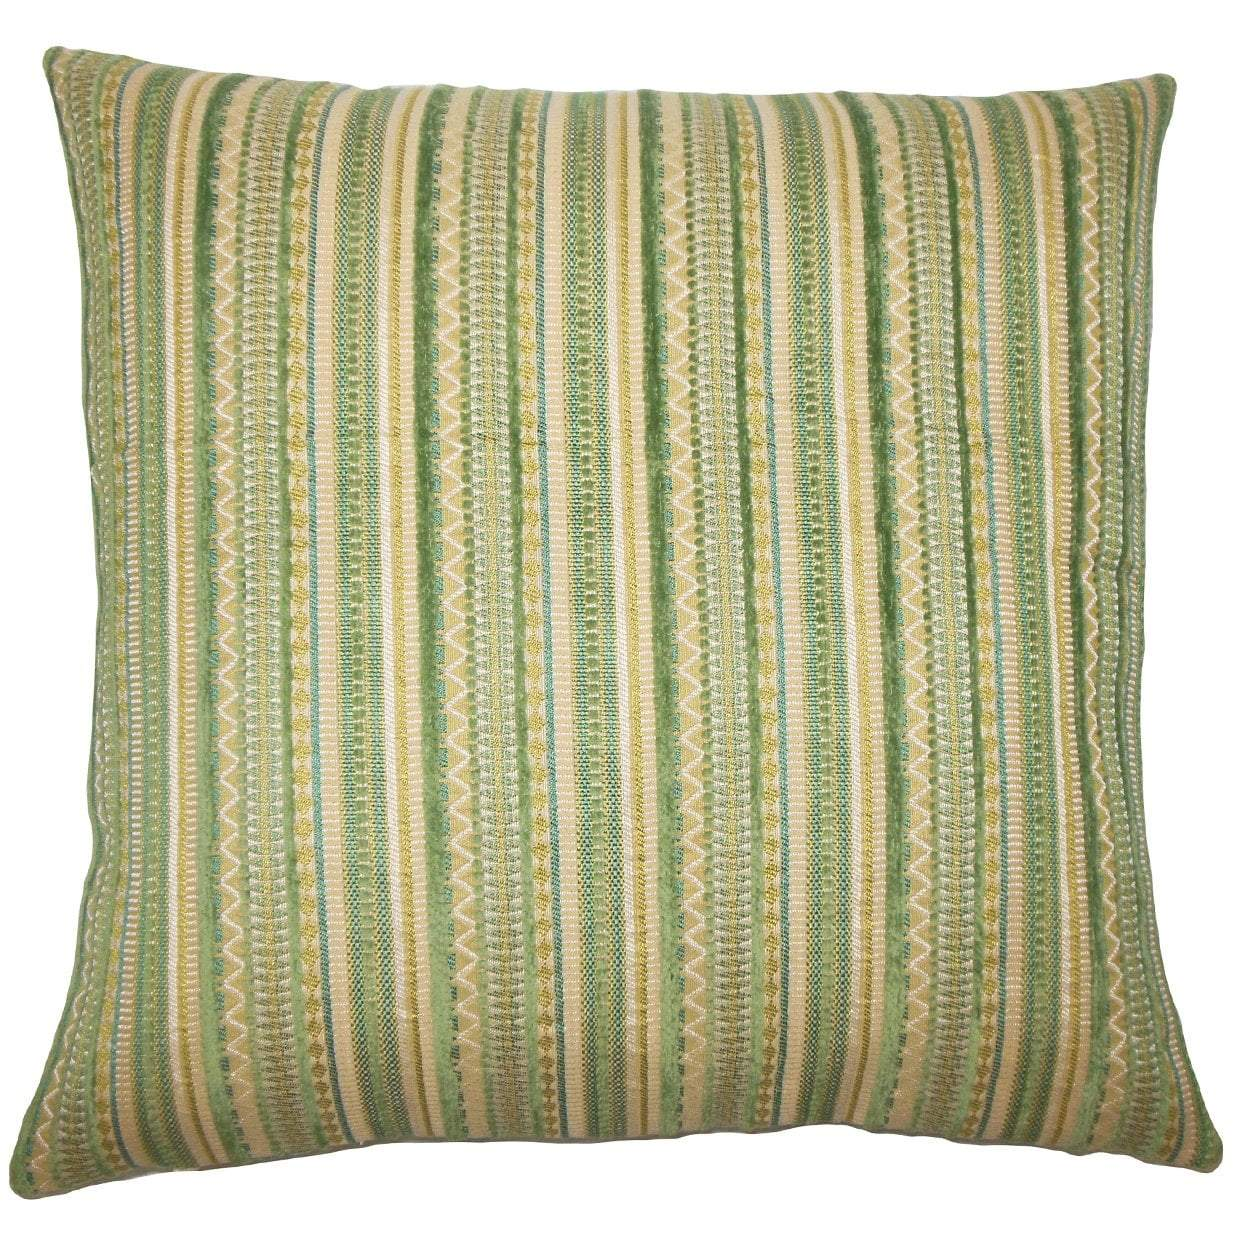 Green Synthetic Striped Contemporary Throw Pillow Cover